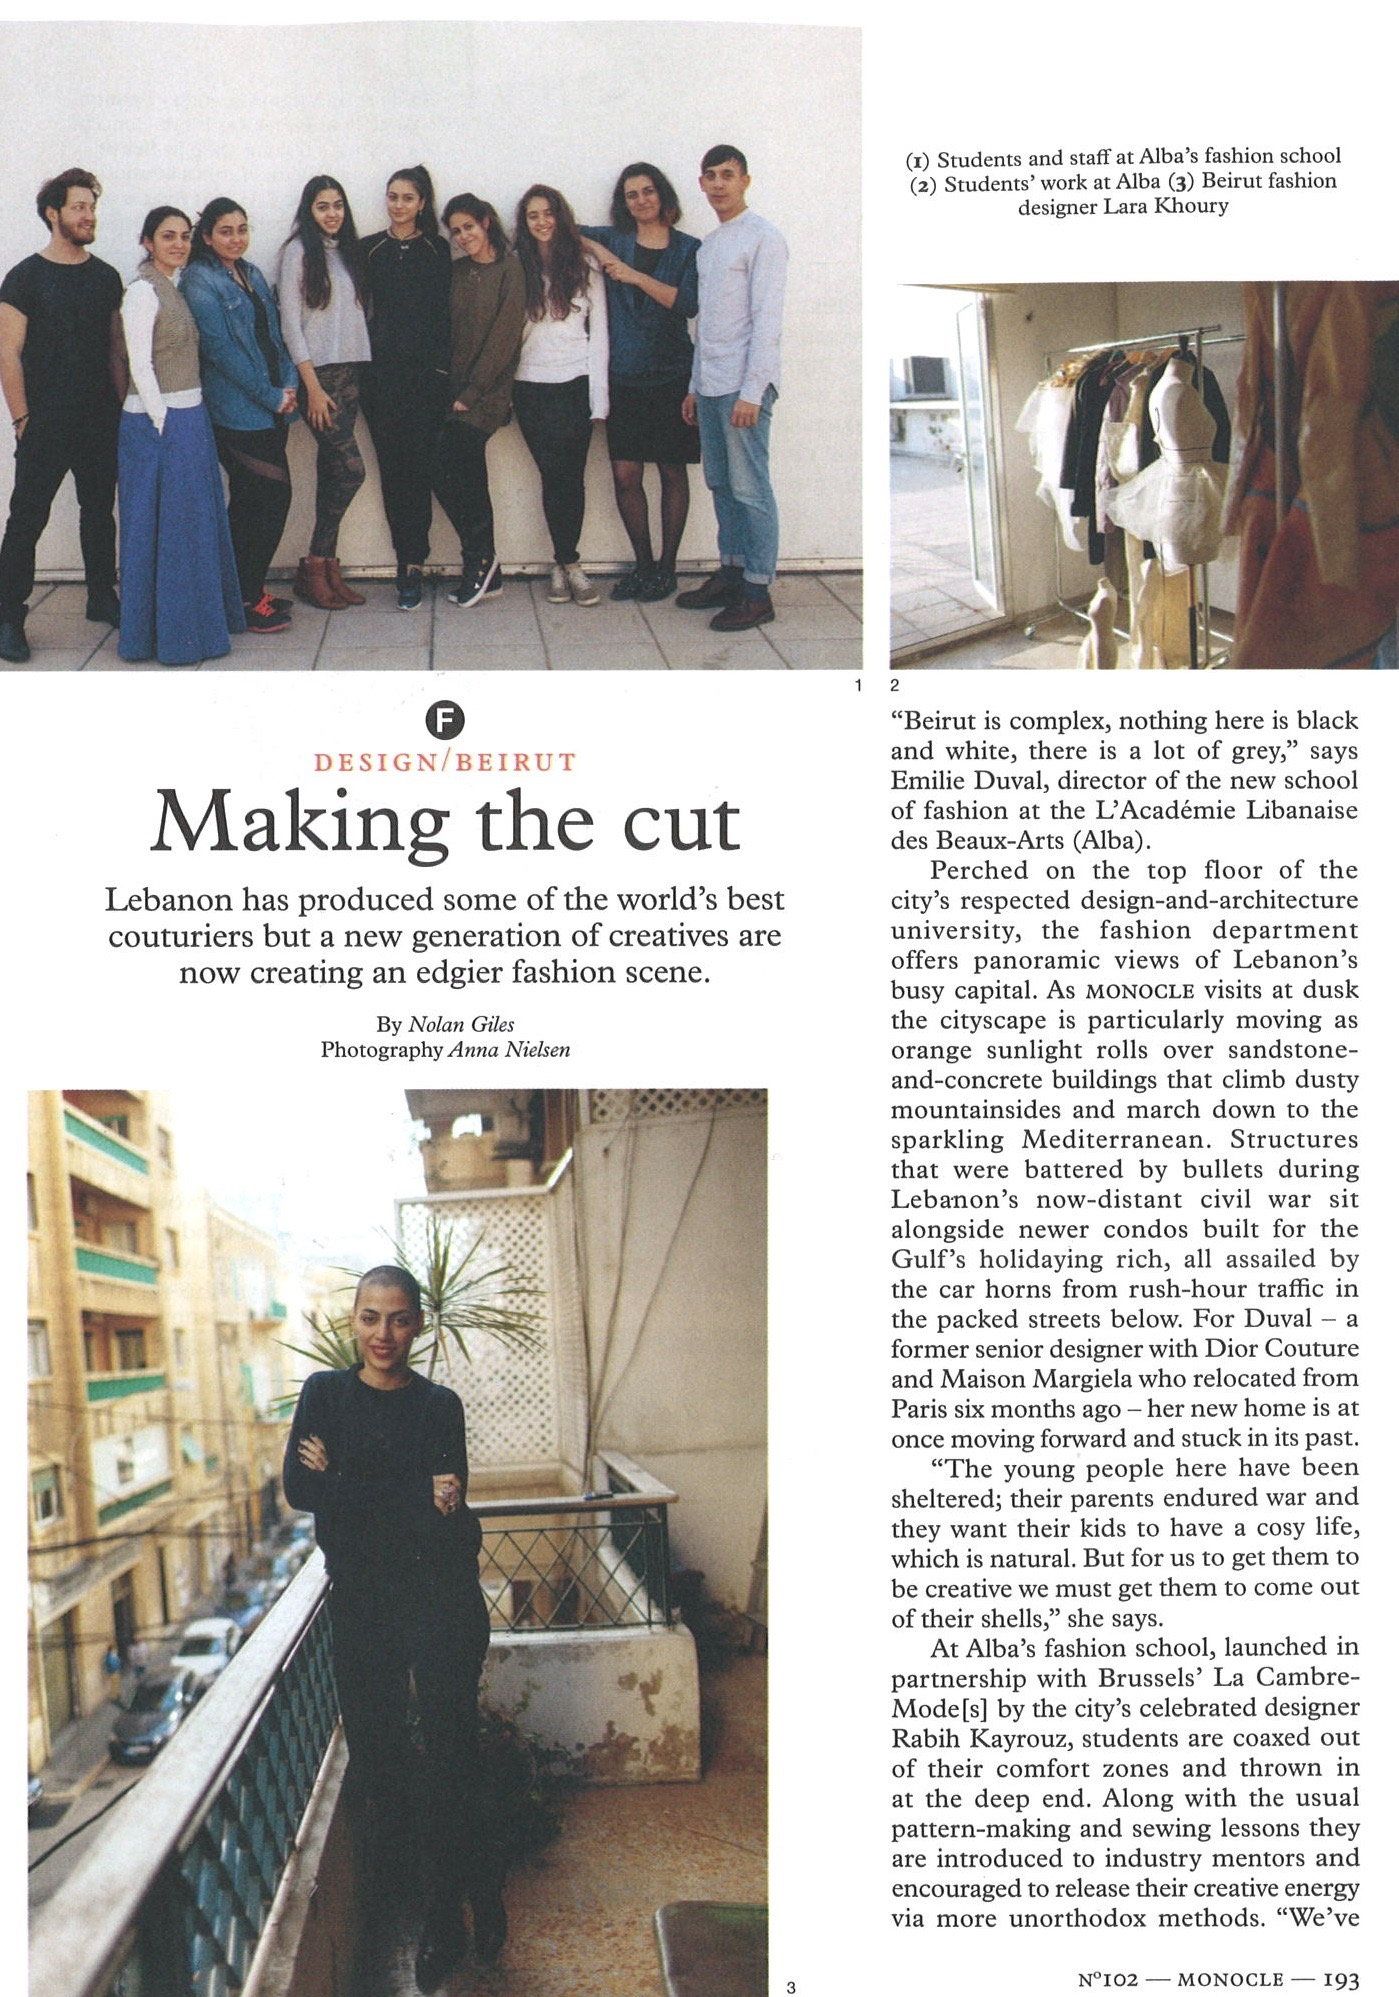 Monocle Uk Making The Cut Media School Of Fashion Design Schools And Programs Lebanese Academy Of Fine Arts Alba Balamand University